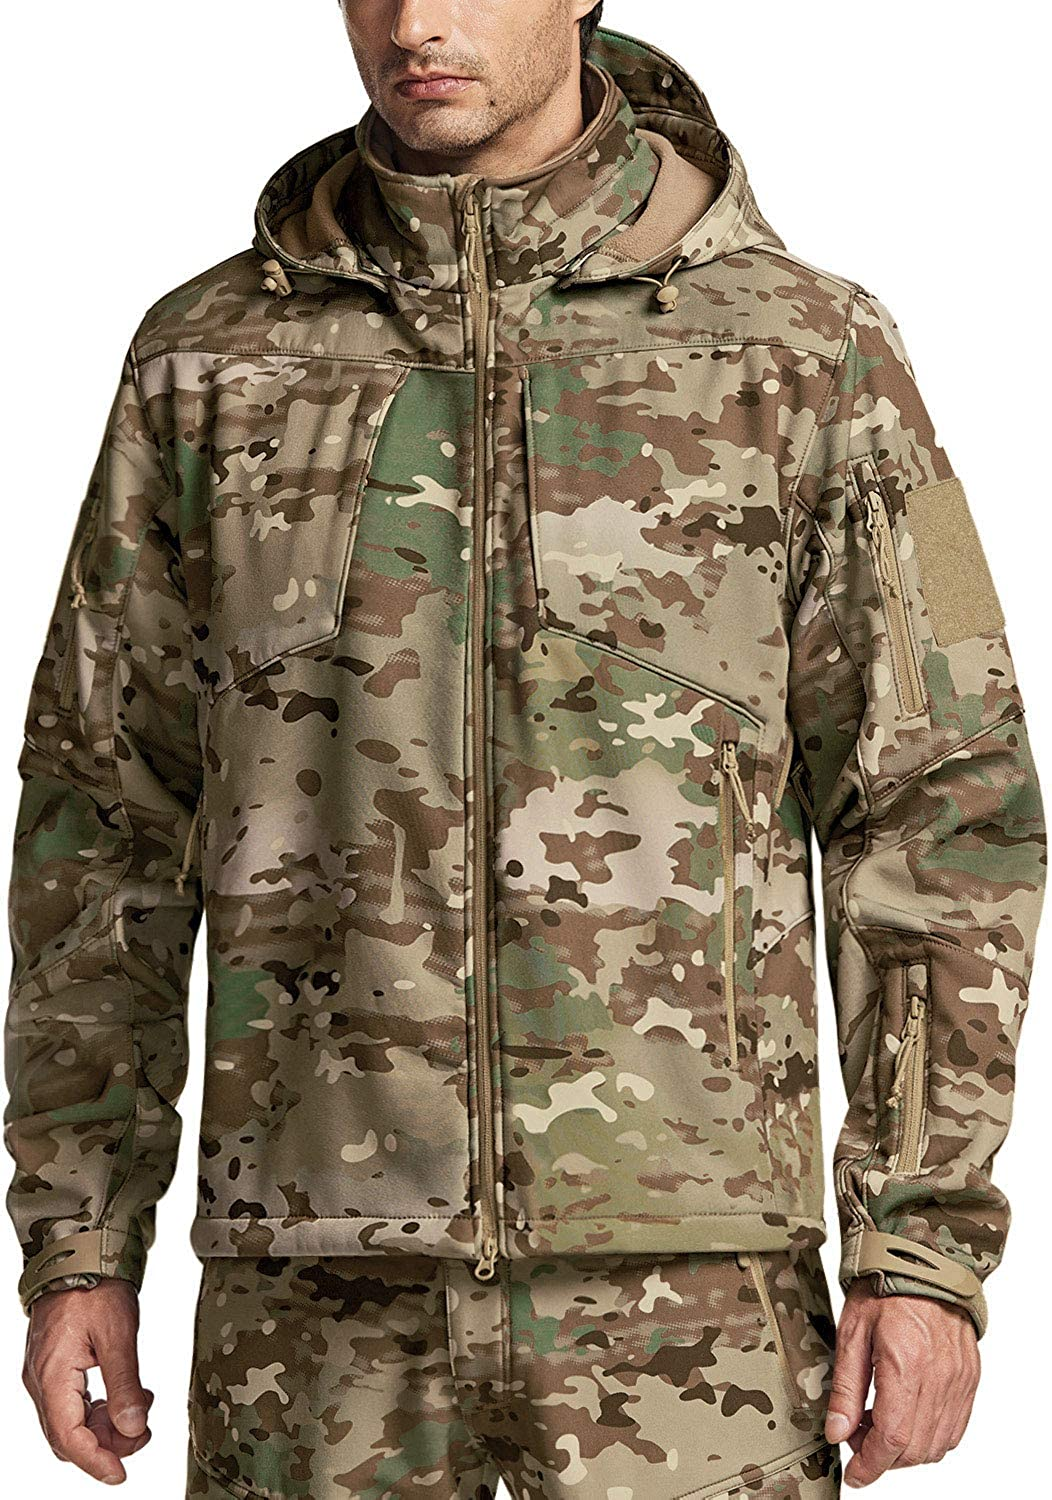 CQR Men's Free shipping New Winter Tactical Military Jackets Ranking TOP13 Waterpro Lightweight